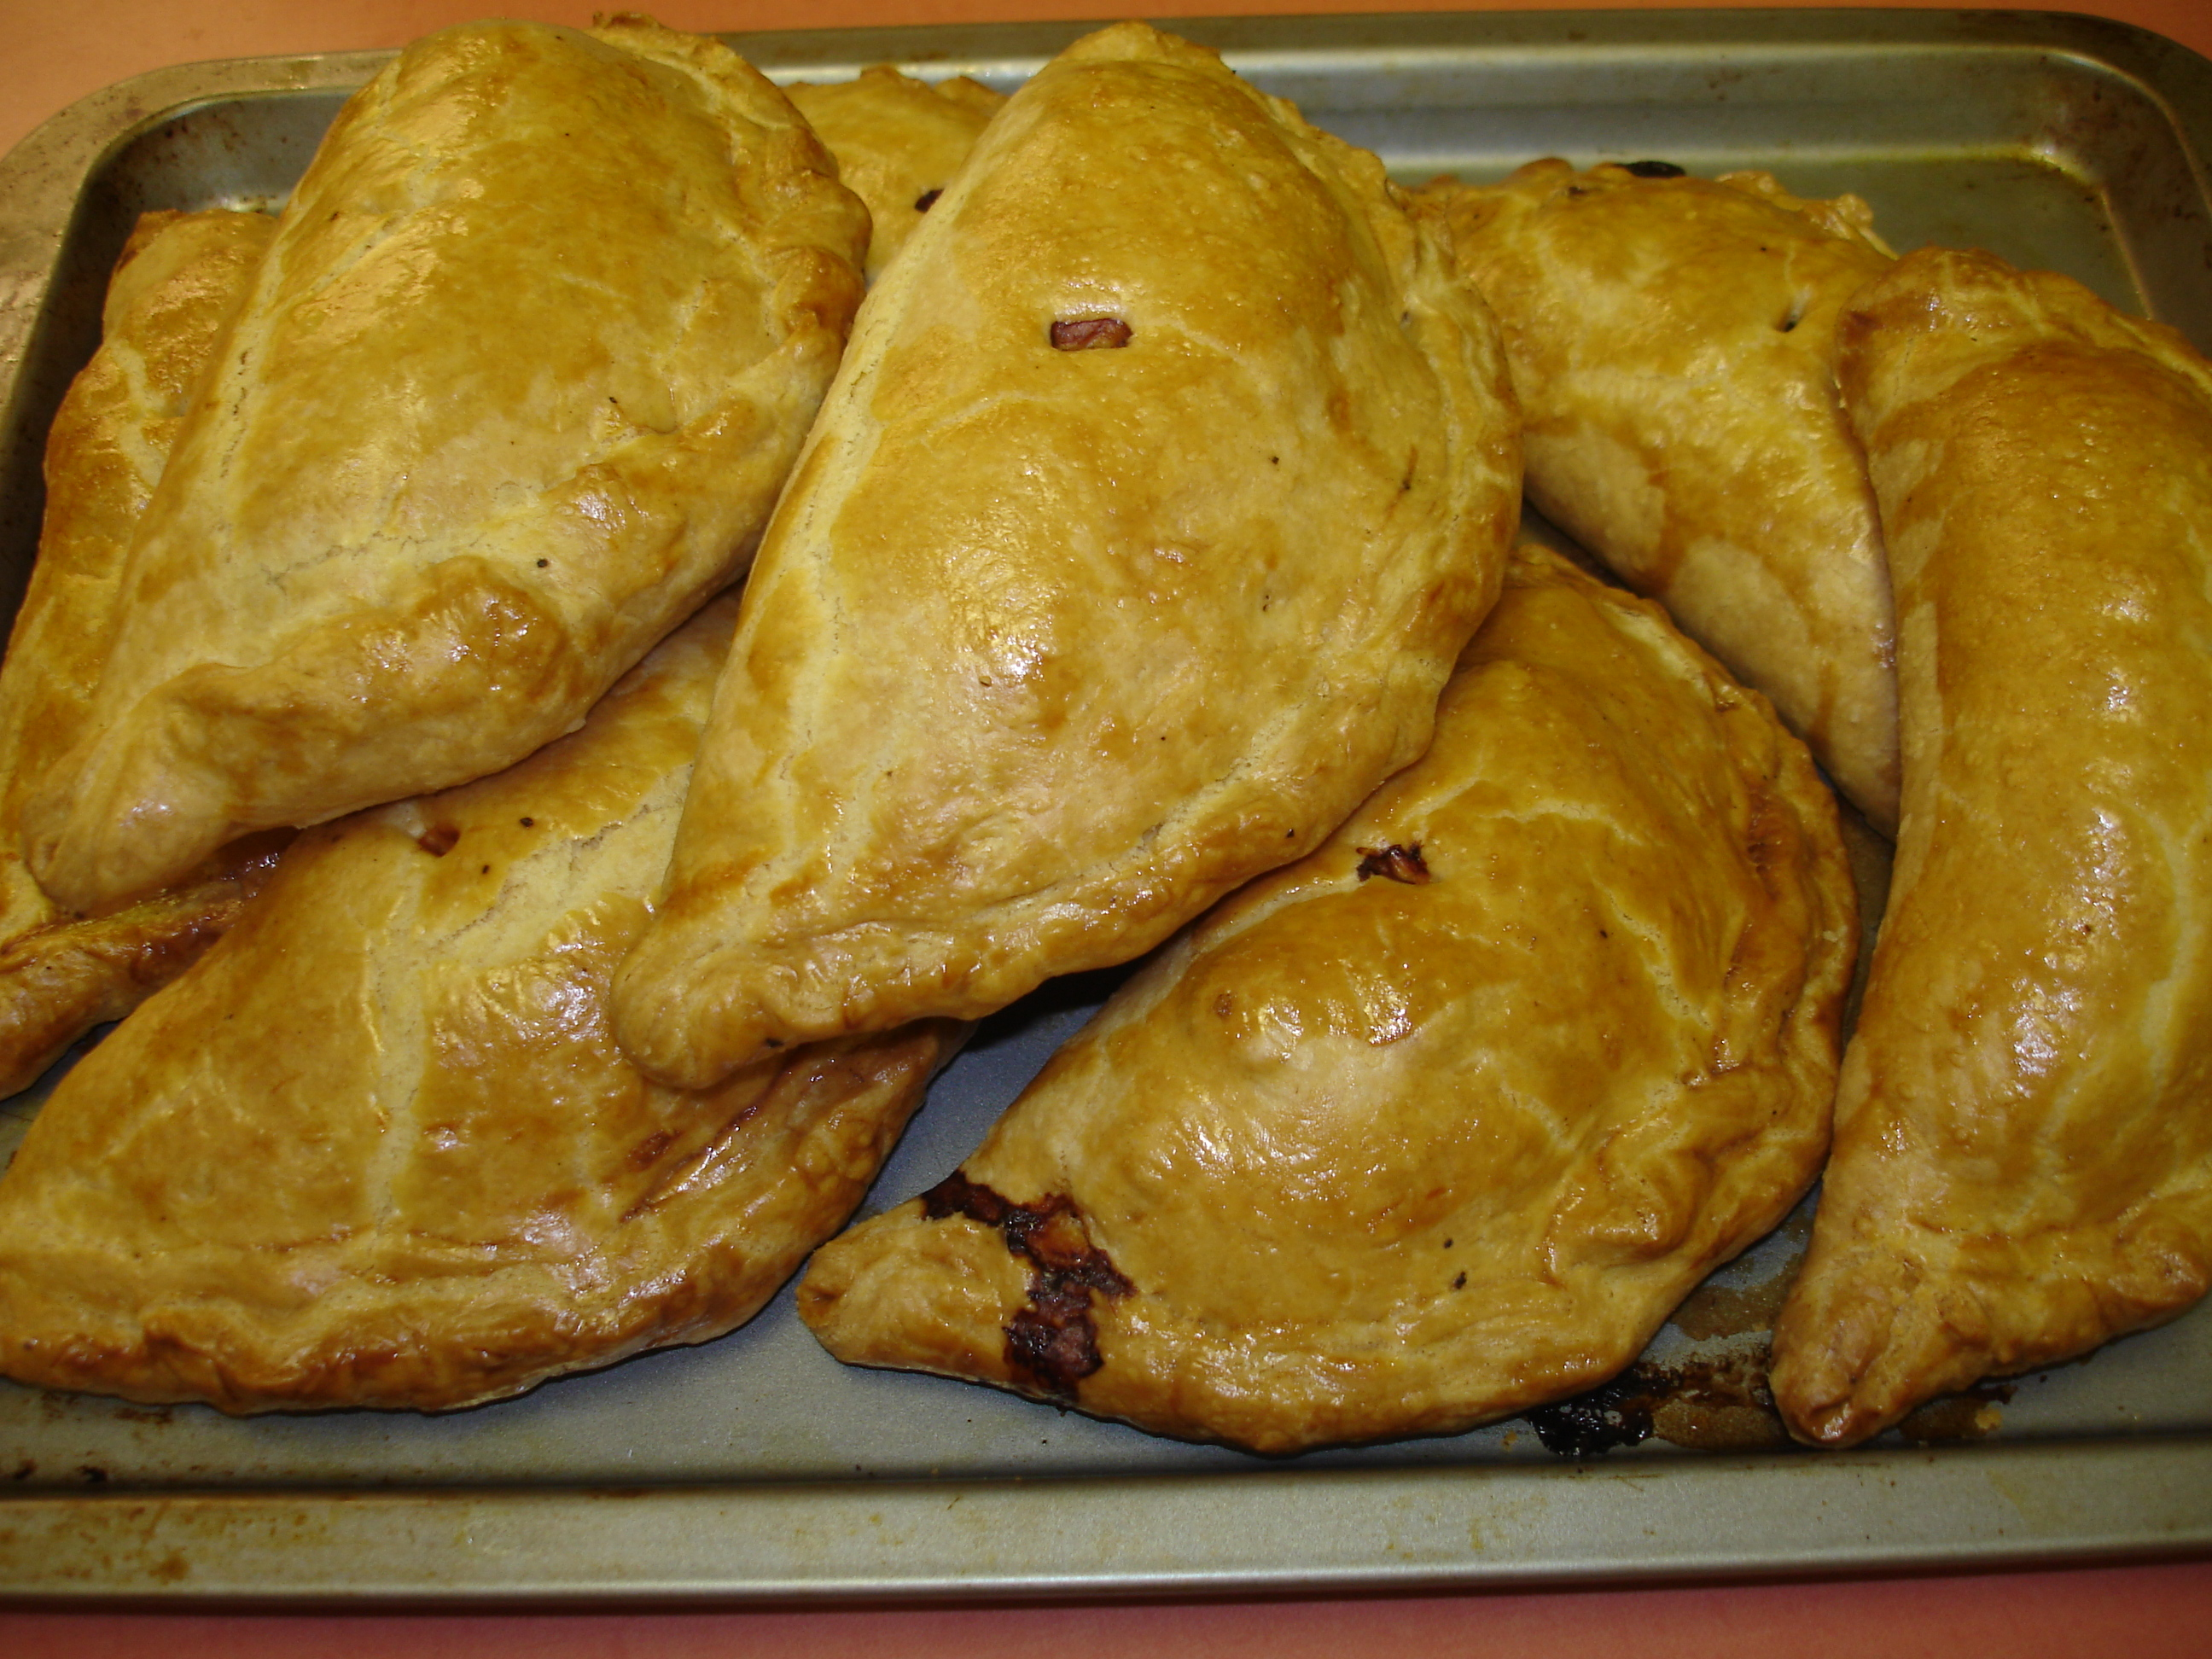 St. Piran's day and the celebratory pasty. « Beyond the pasty...